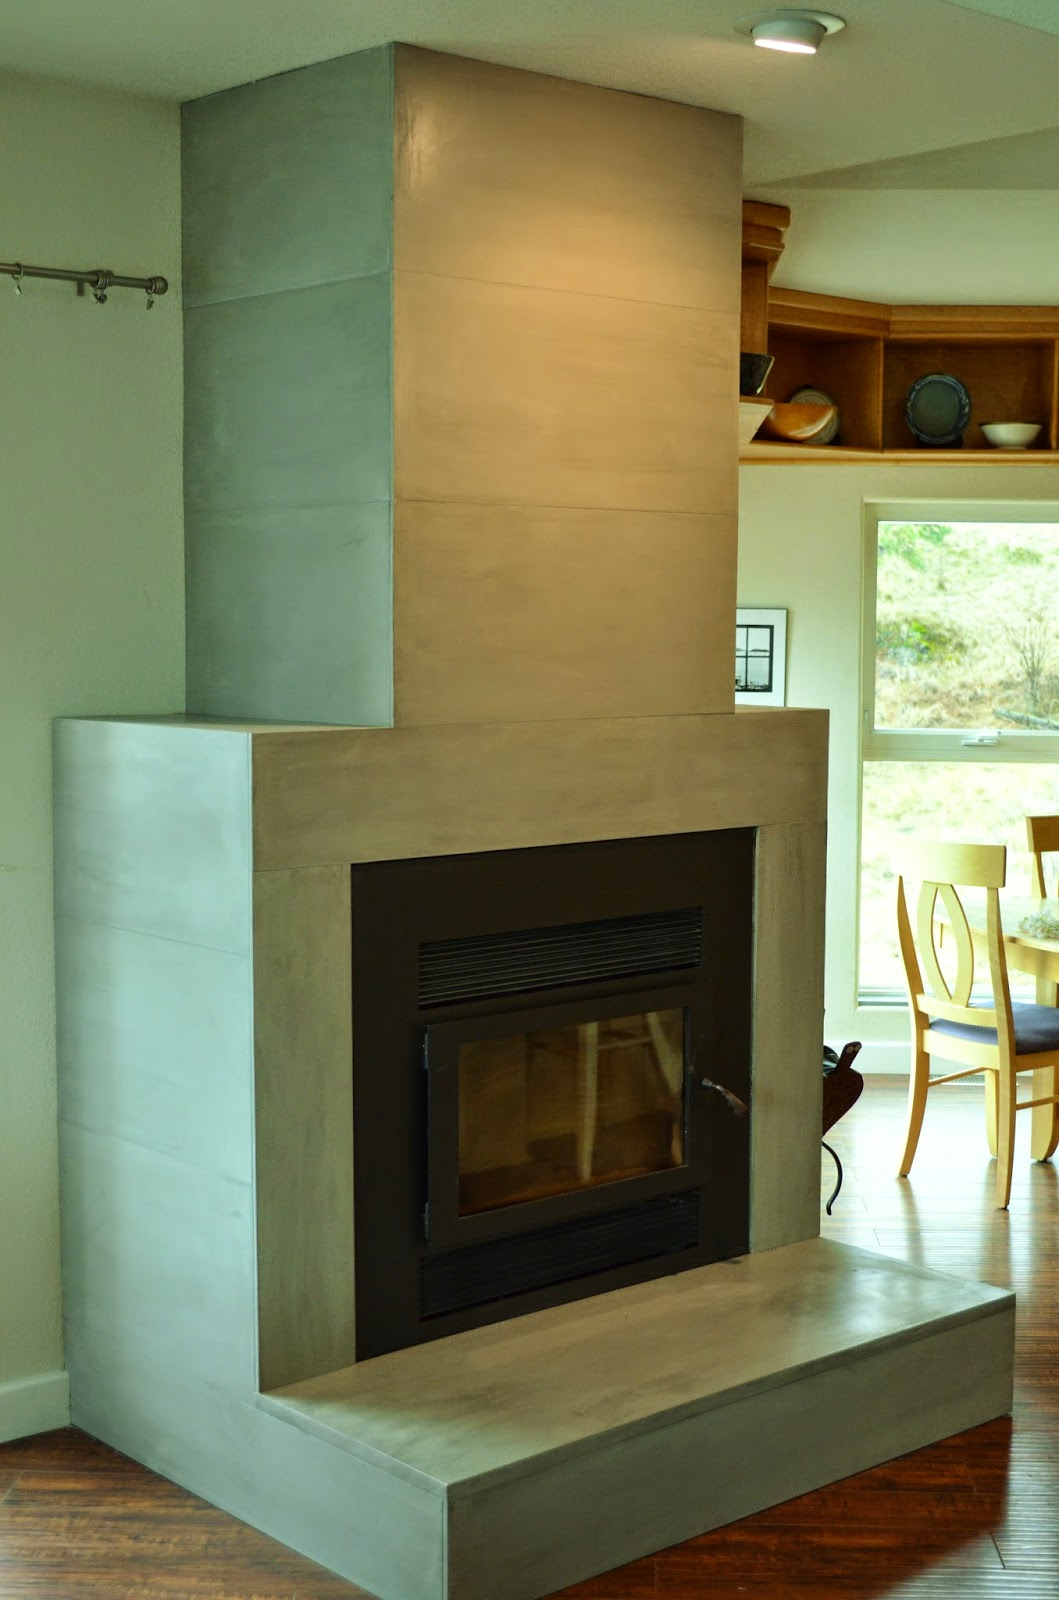 Mode Concrete Contemporary Tiled Concrete Fireplace Large Format Ultra Thin Wall Tiles Made